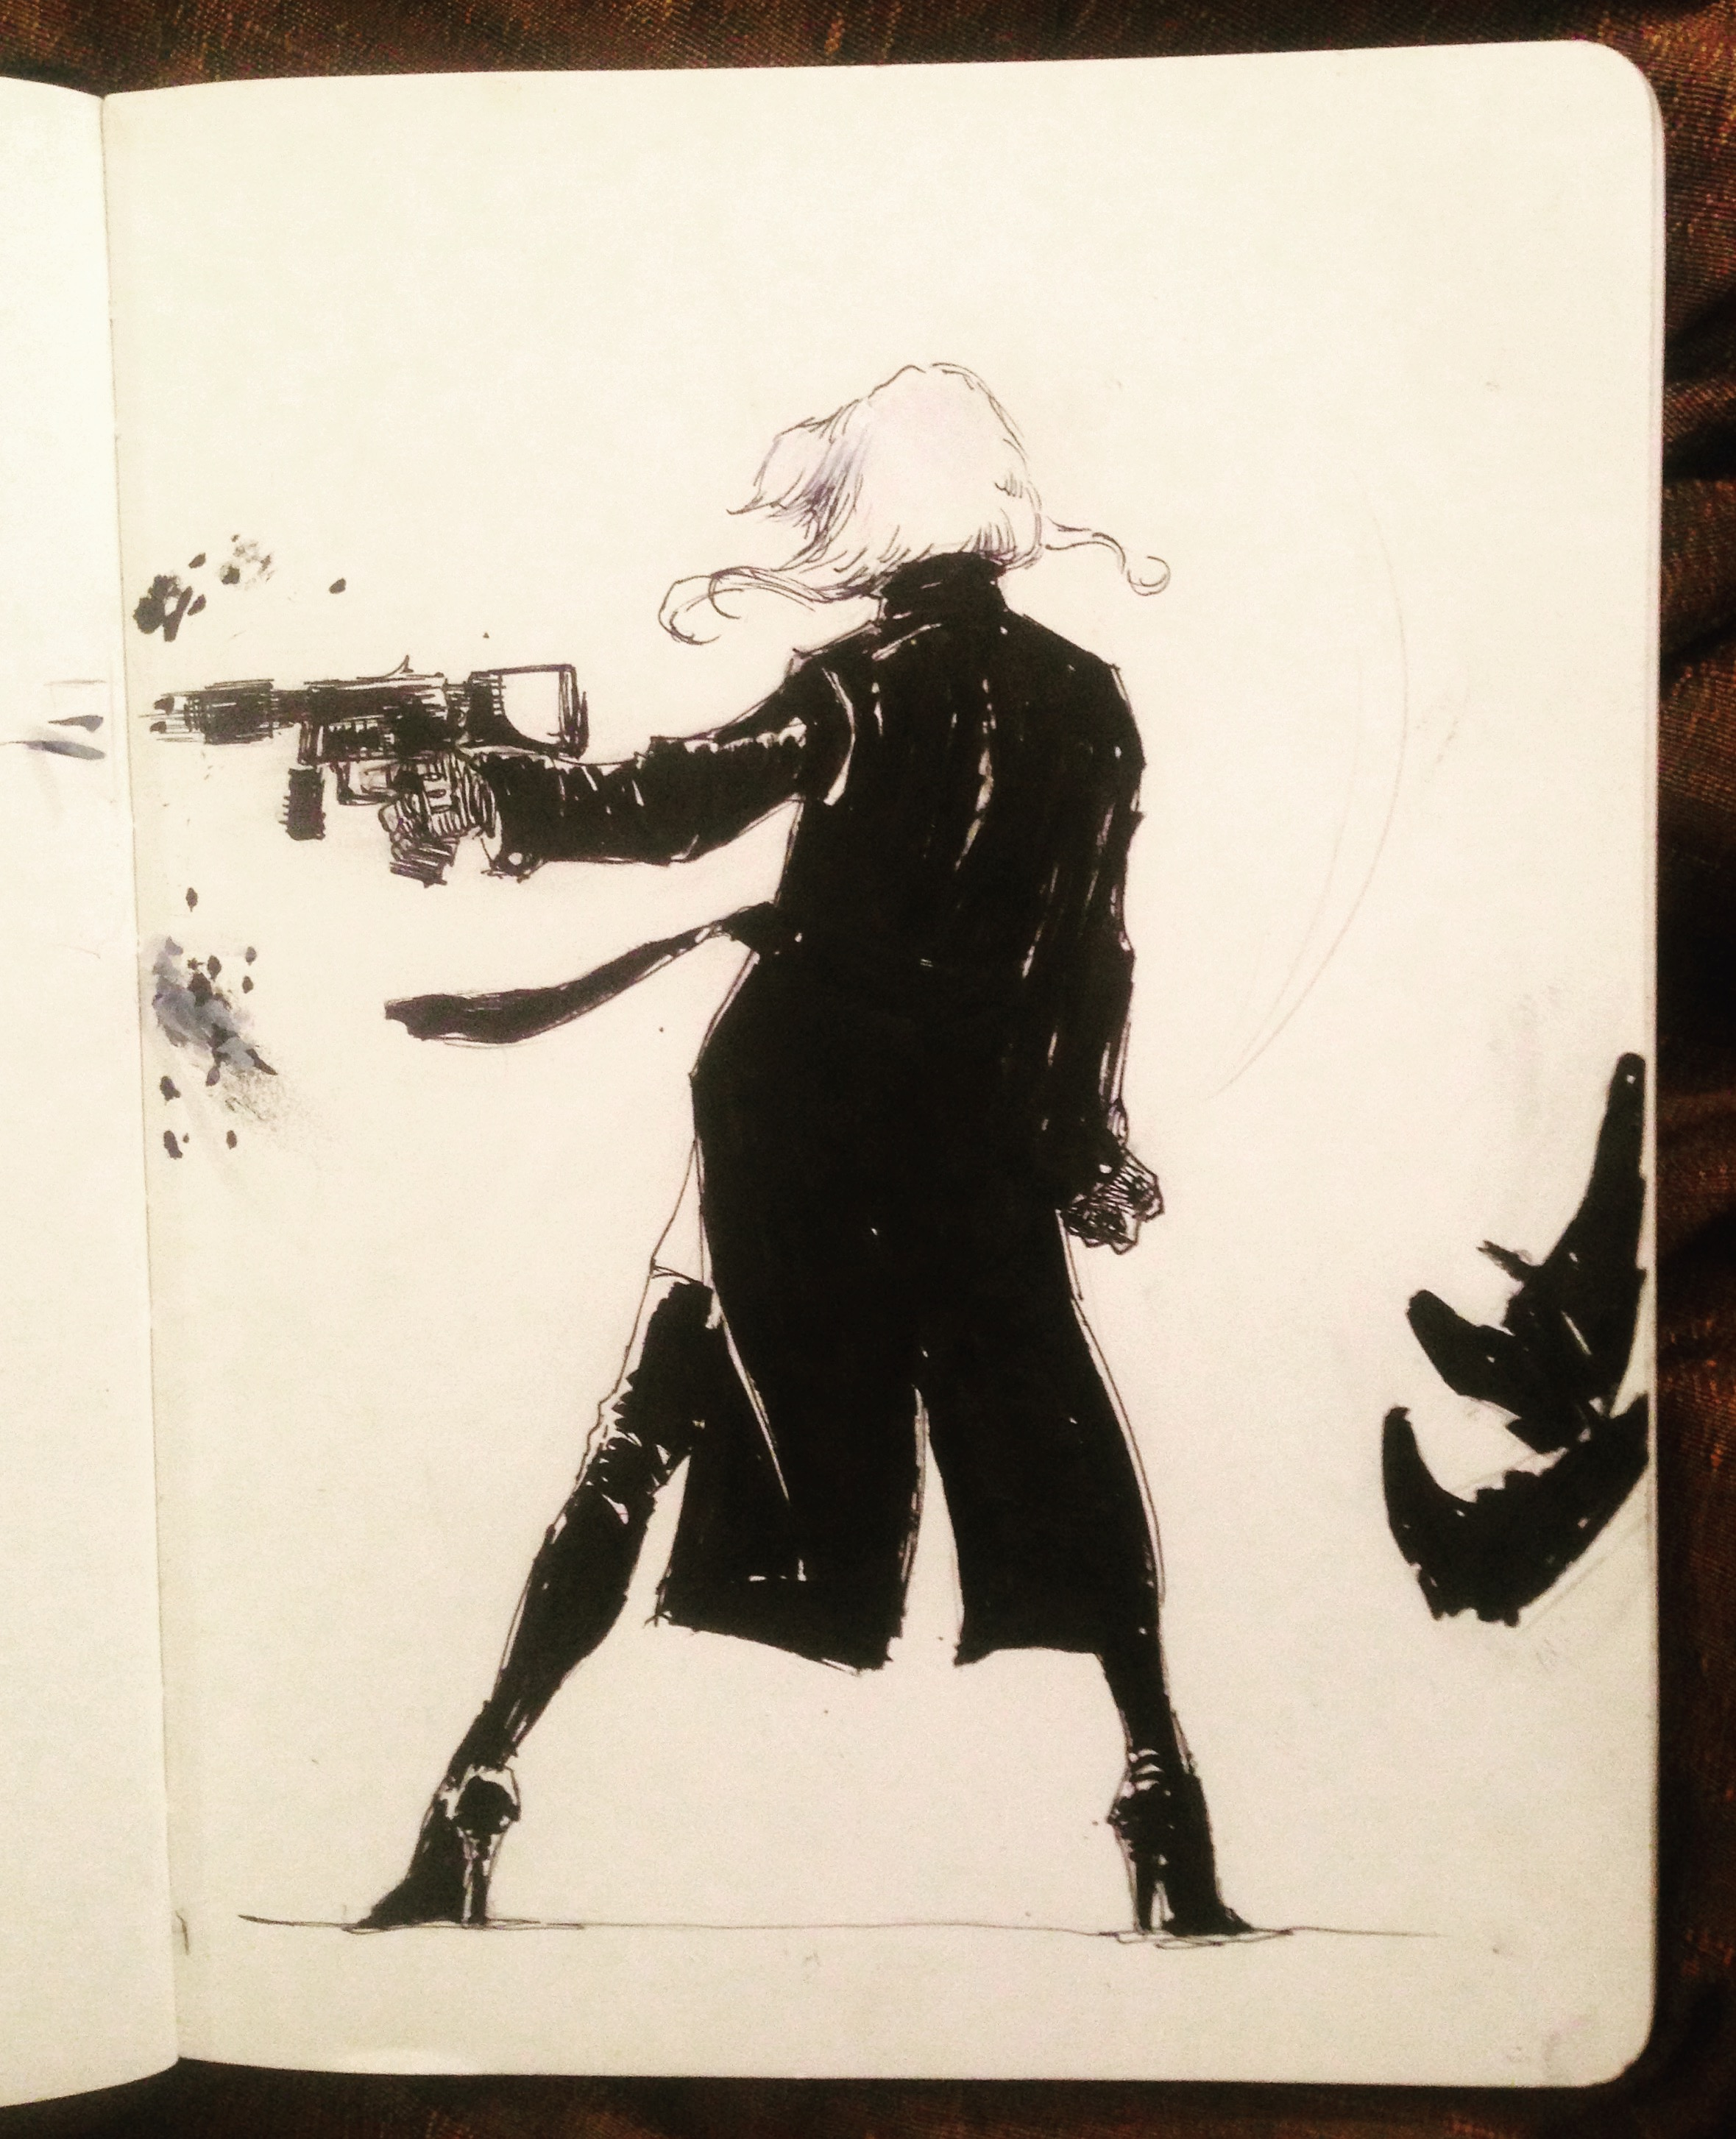 Inspired by Atomic Blonde. An ink sketch.